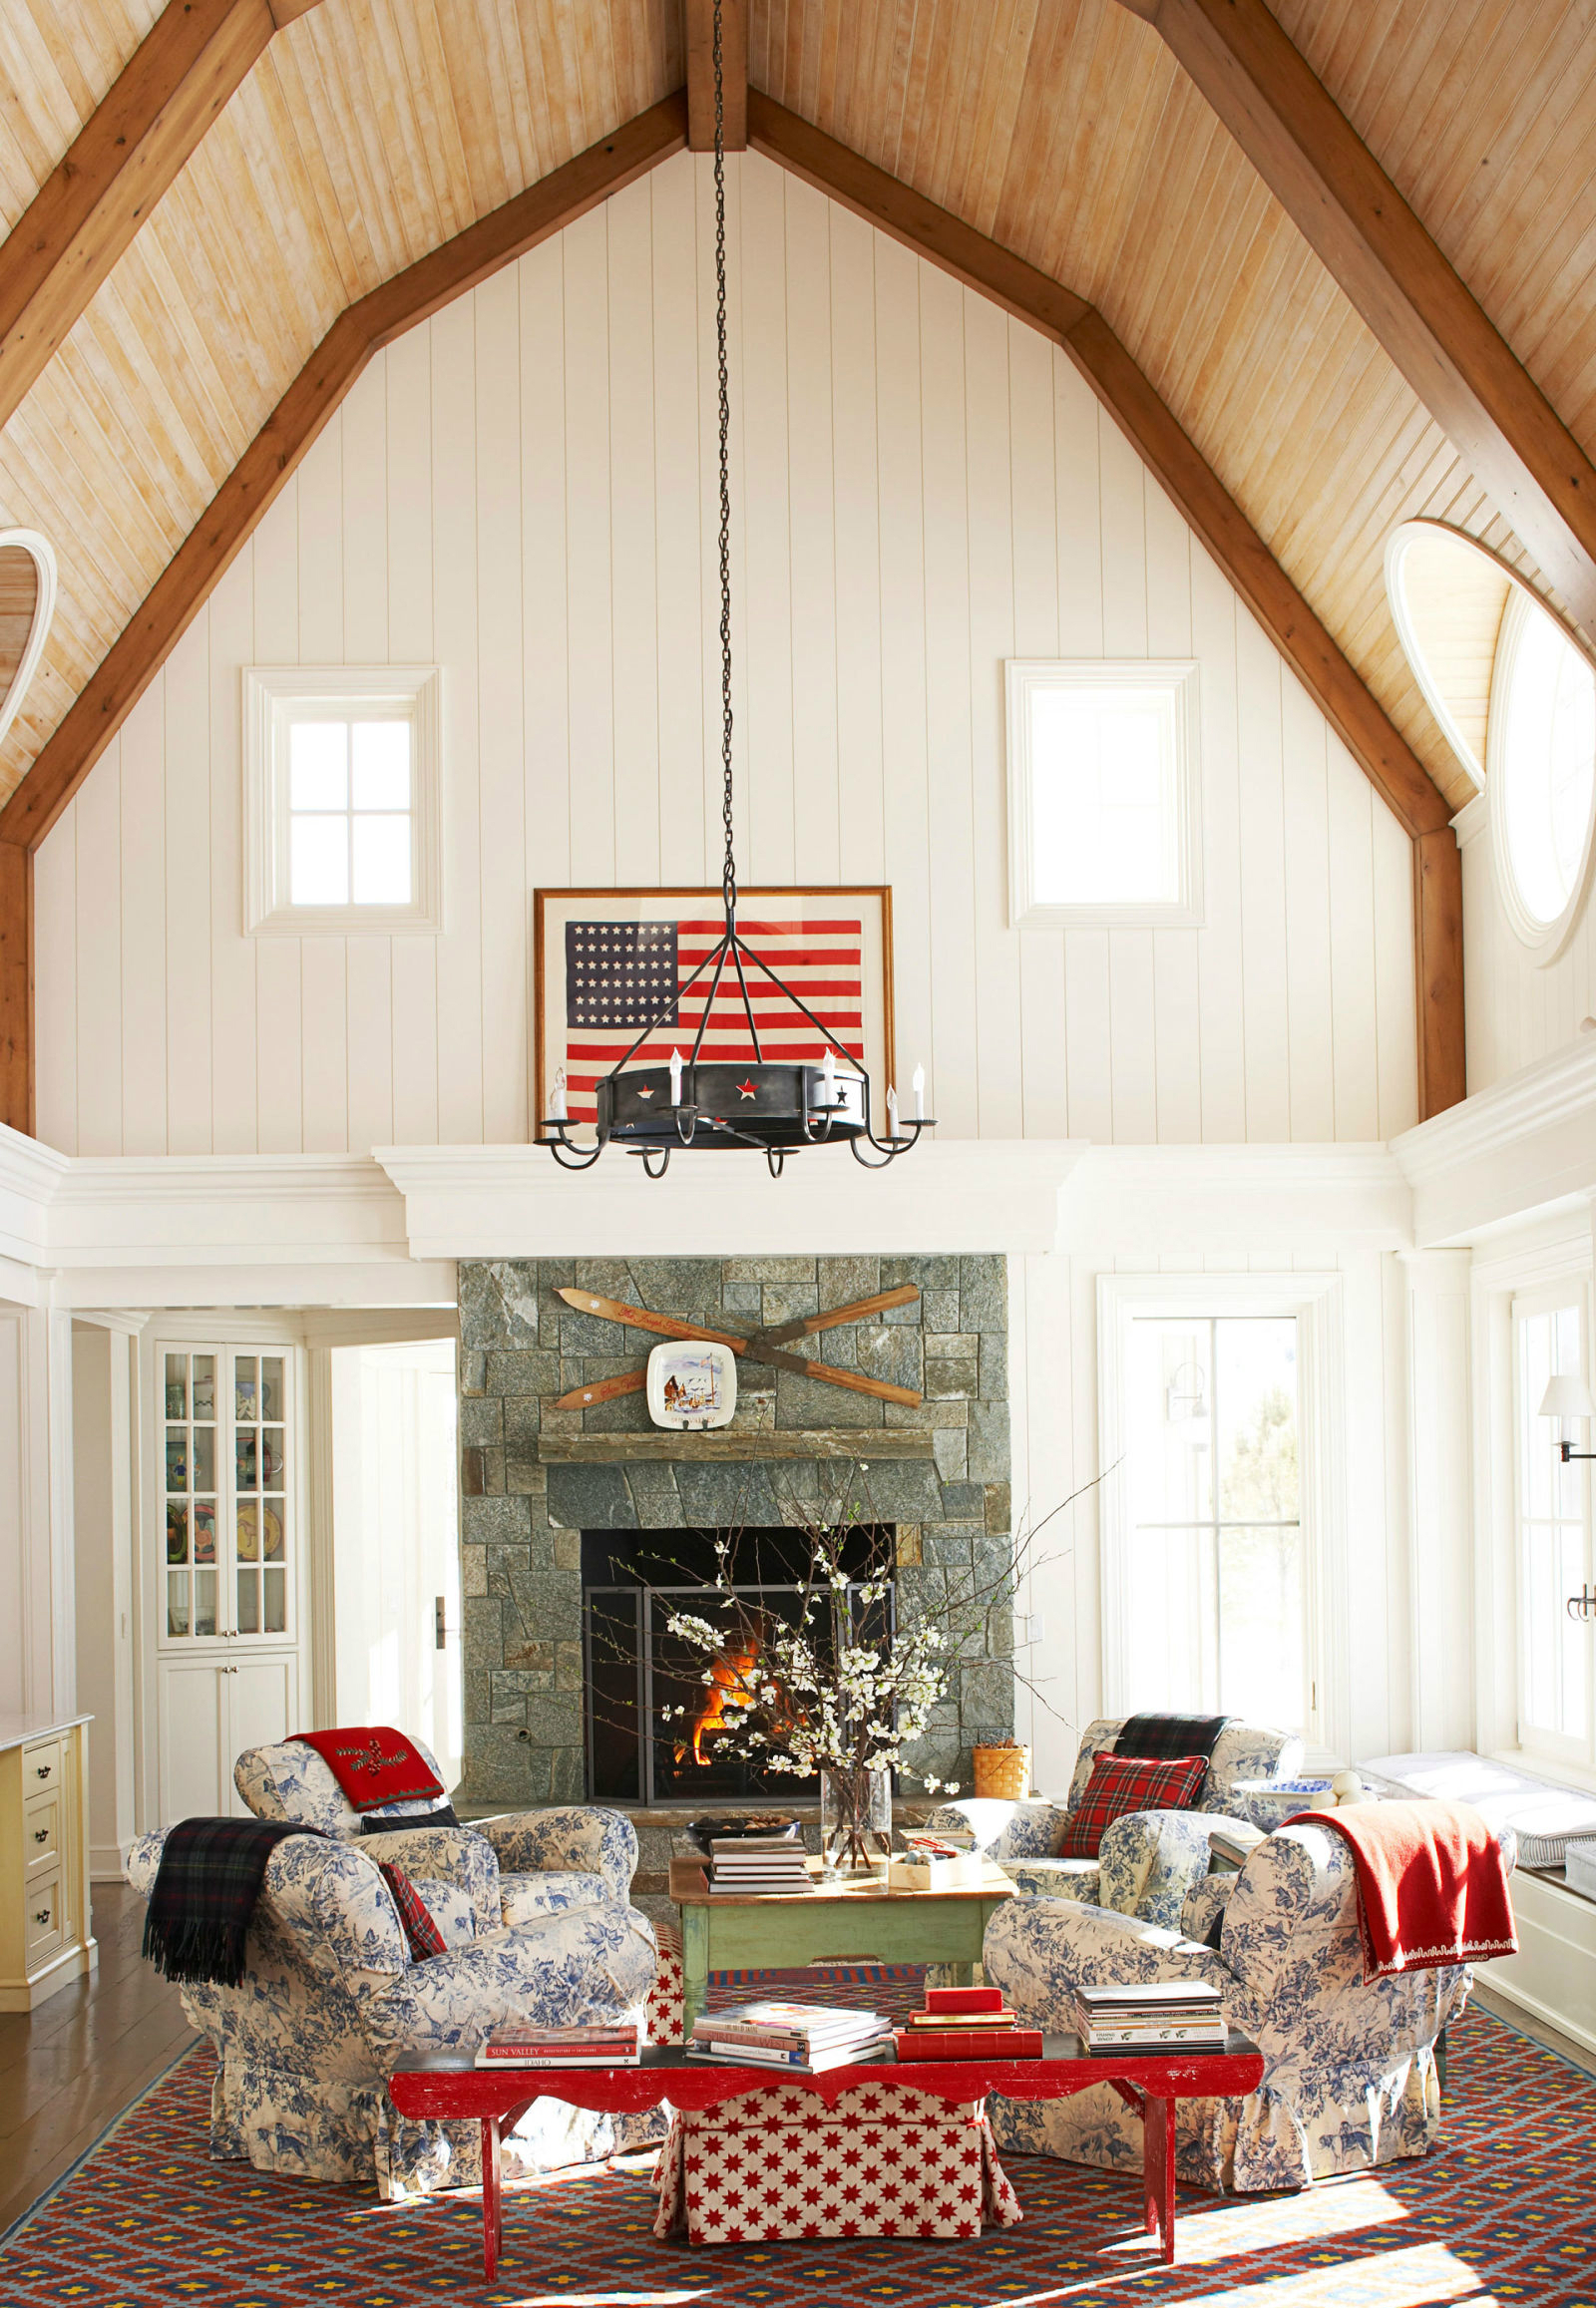 10 Chic Ways to Decorate in Red, White and Blue luxury homes